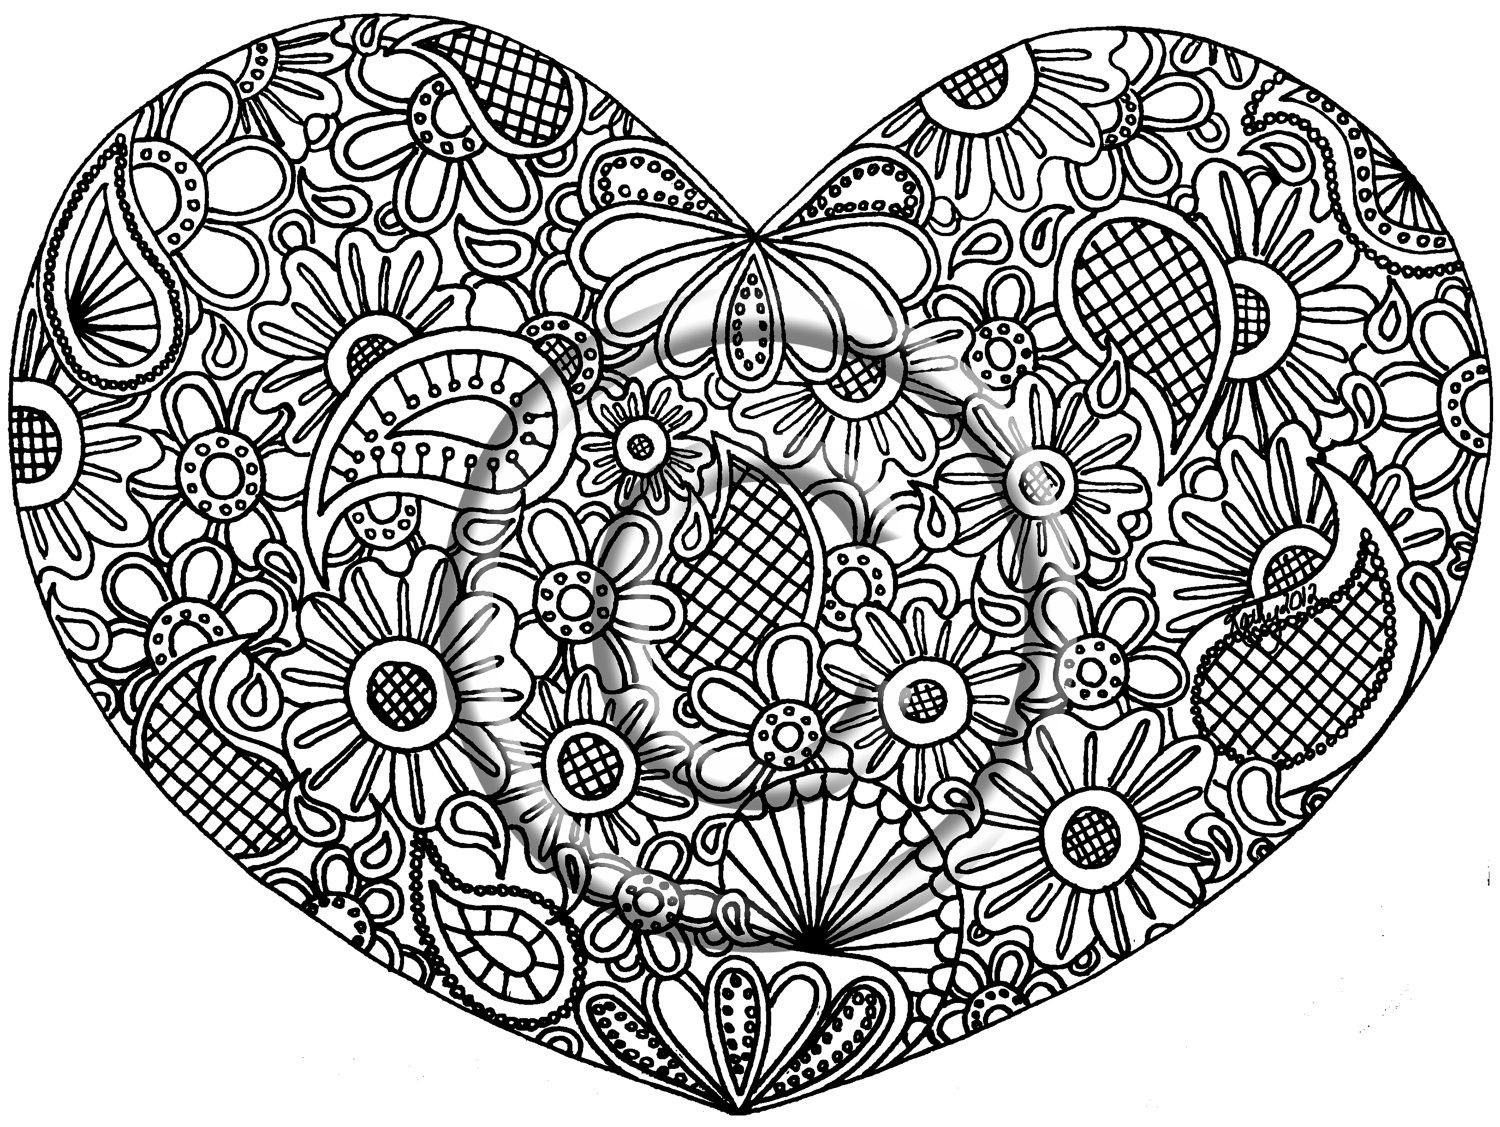 Printable Download Coloring Page, Hand Drawn Zentangle Inspired ...